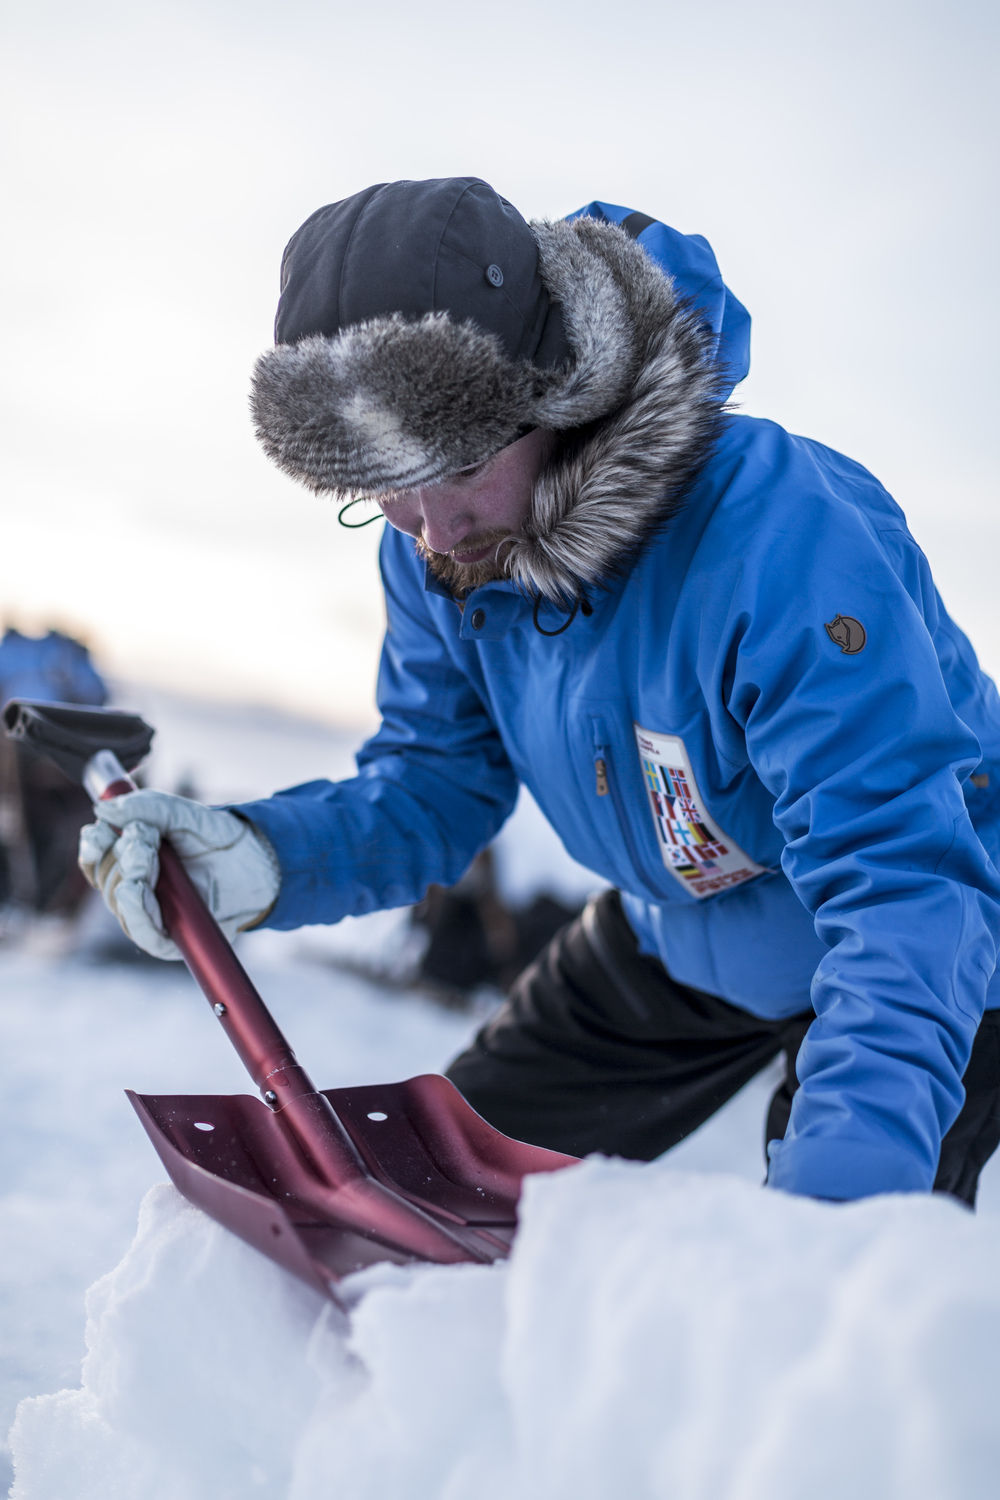 Finnish Fjällräven Polar participant Tuomo Lampela uses his shovel to level and pack a snow block, before adding another layer to his wall. (Photo by Håkan Wike for Fjällräven International. All rights reserved.)